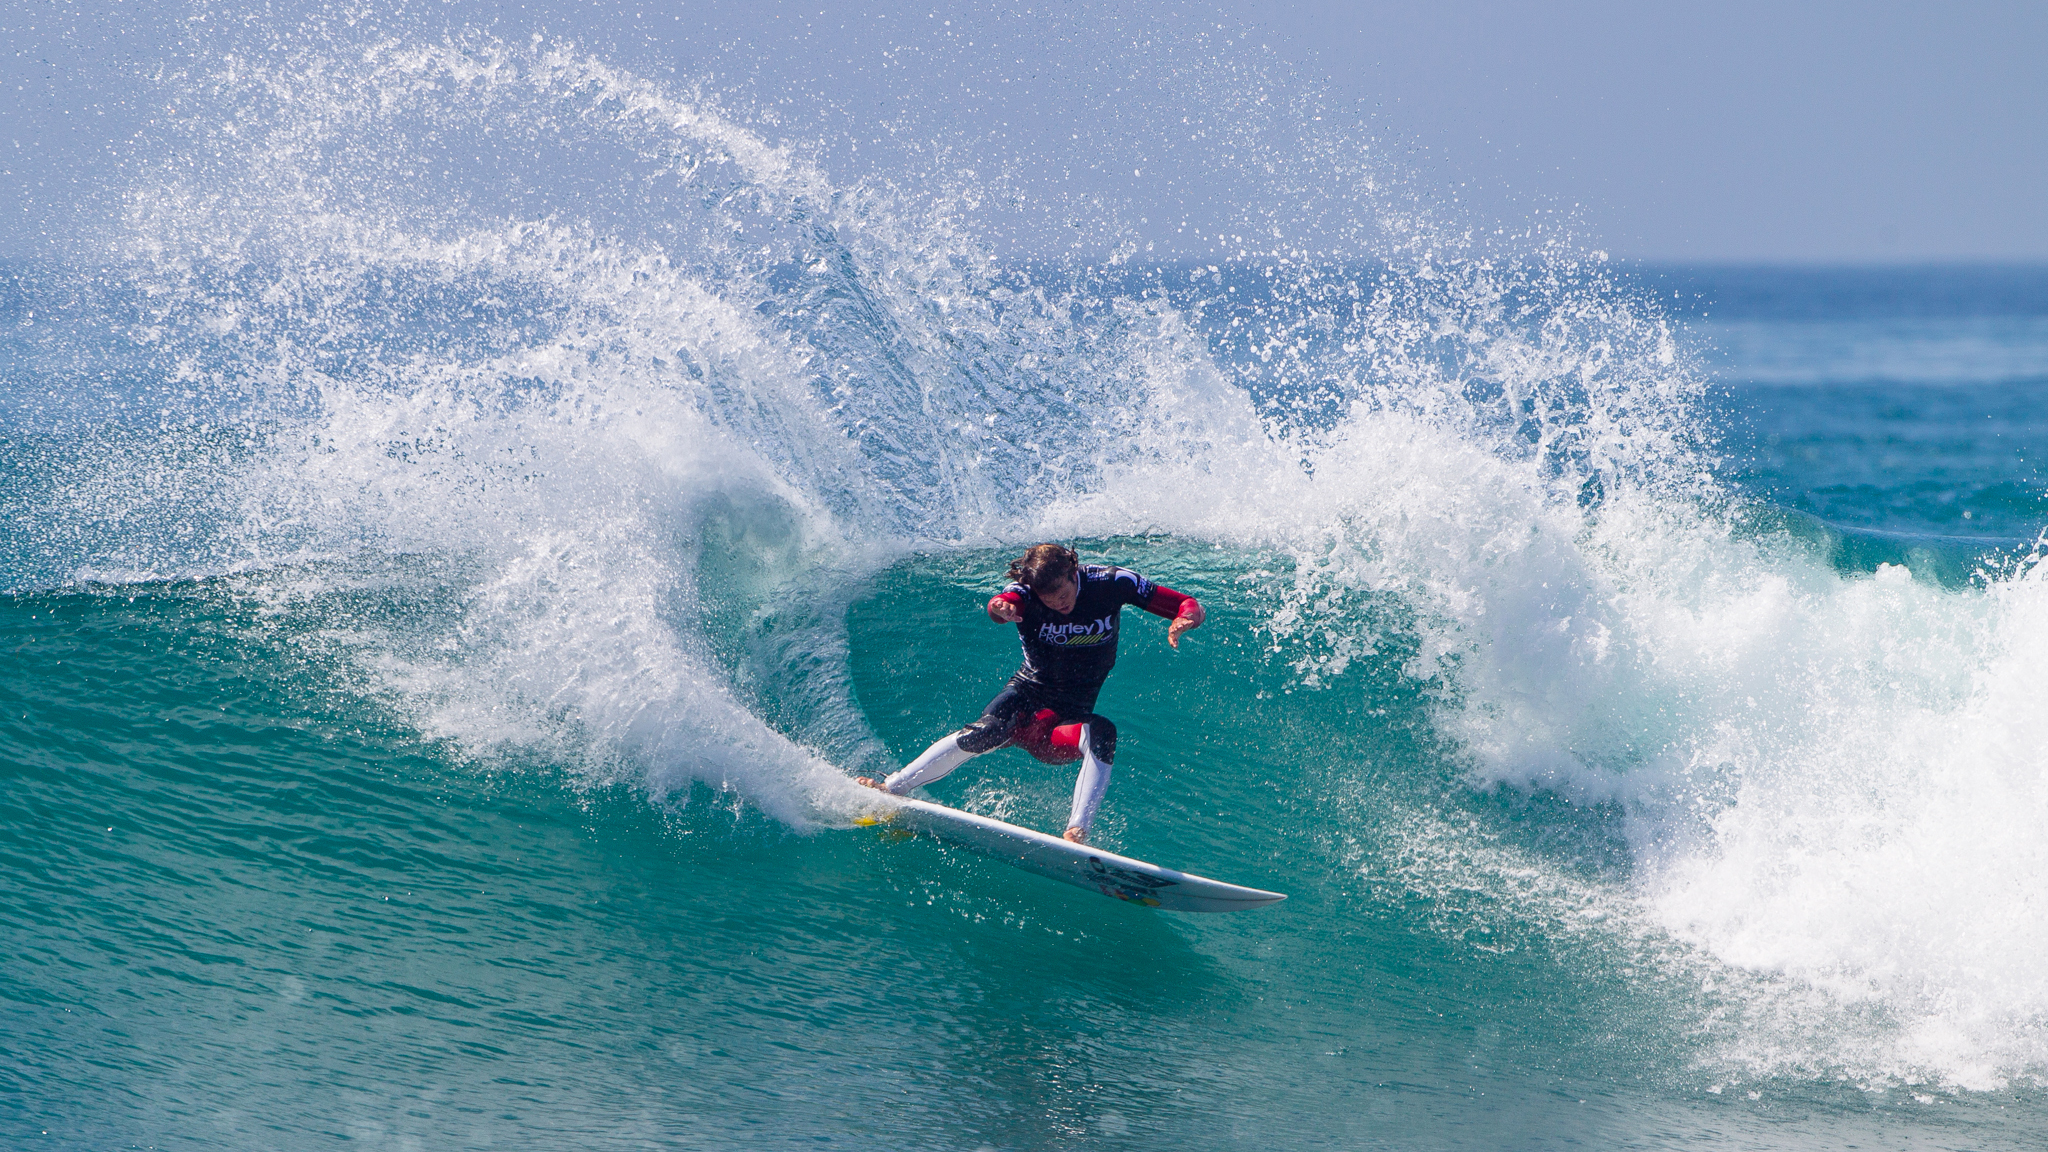 Hurley Lowers Pro